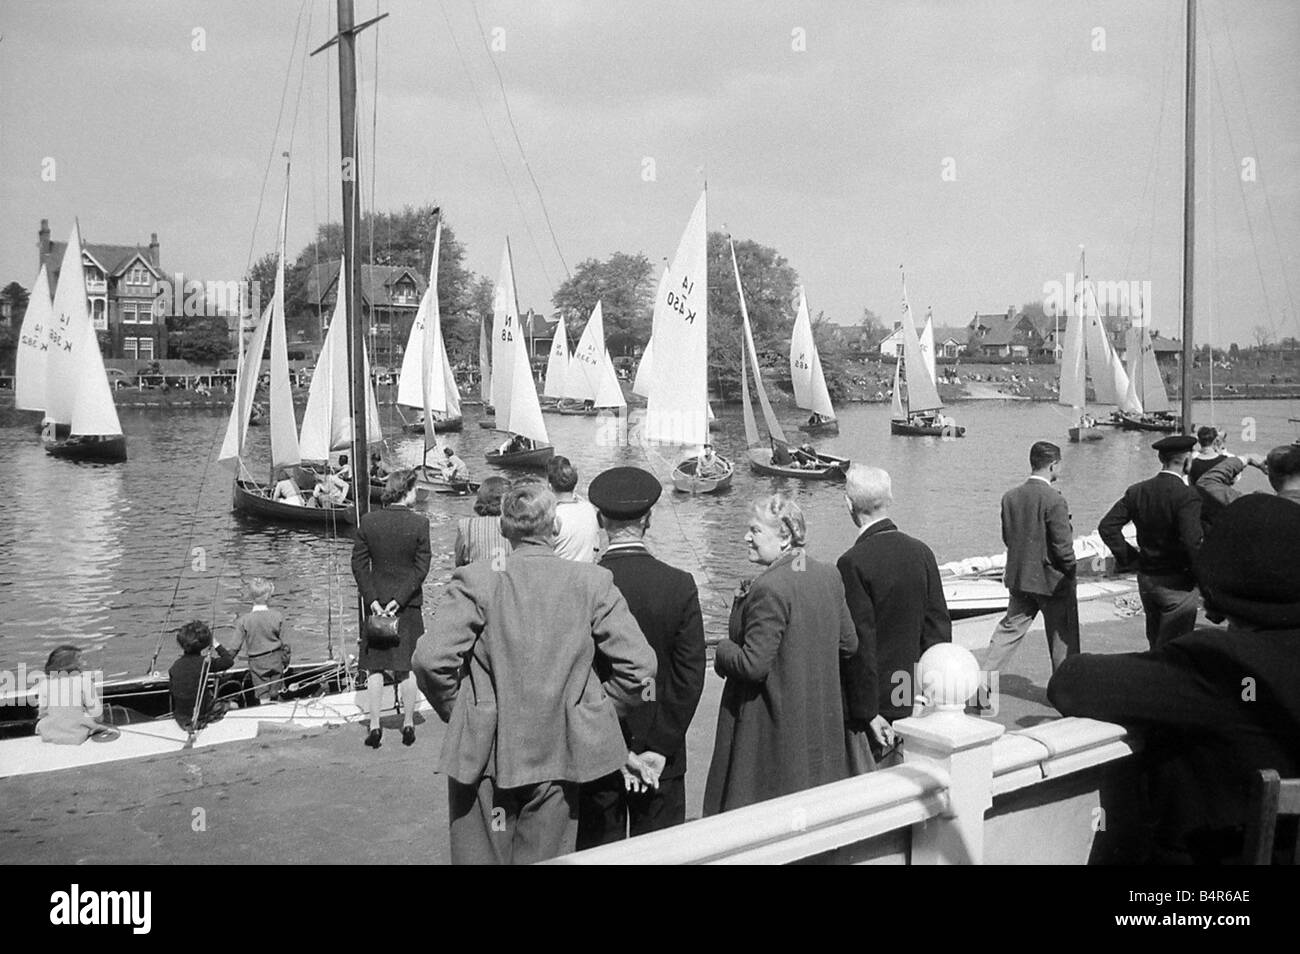 Tamesis Sailing Club s opening regatta of the season on the Thames at Teddington April 1946 - Stock Image